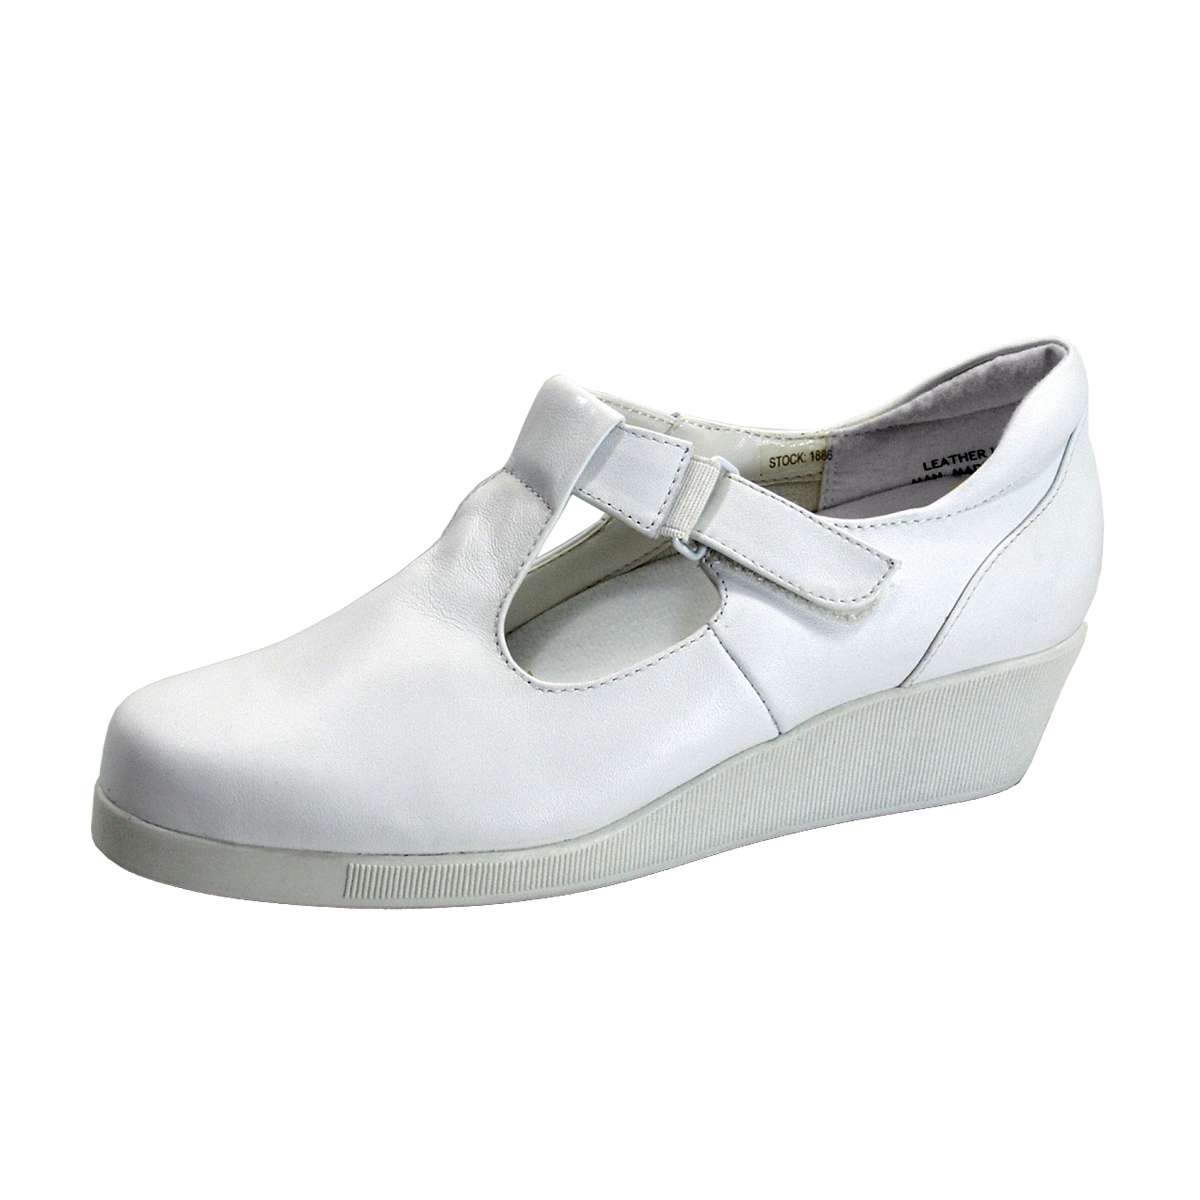 24 HOUR COMFORT Reanne Women's Wide Width T-Strap Leather Shoes - $39.95